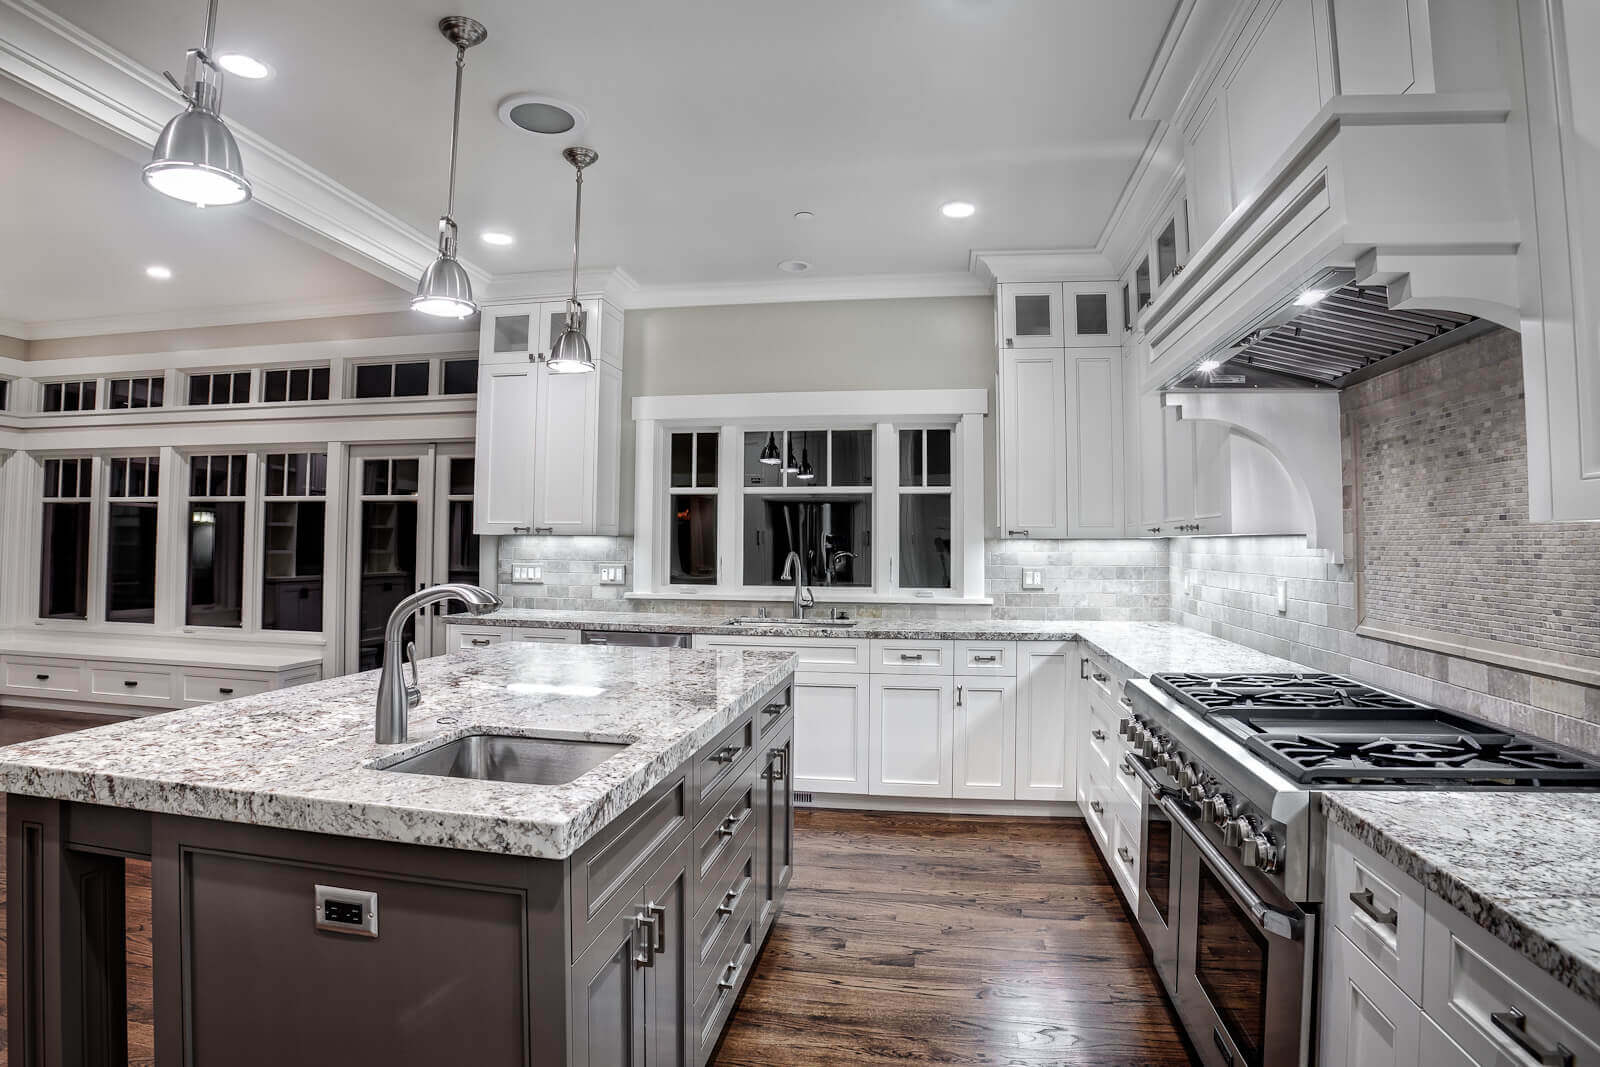 The crisp white backdrops and cabinets take up the larger feel this modern kitchen with granite countertops, but the use of the black–spotted gray granite countertops helps to keep the entire fixtures blended with the design